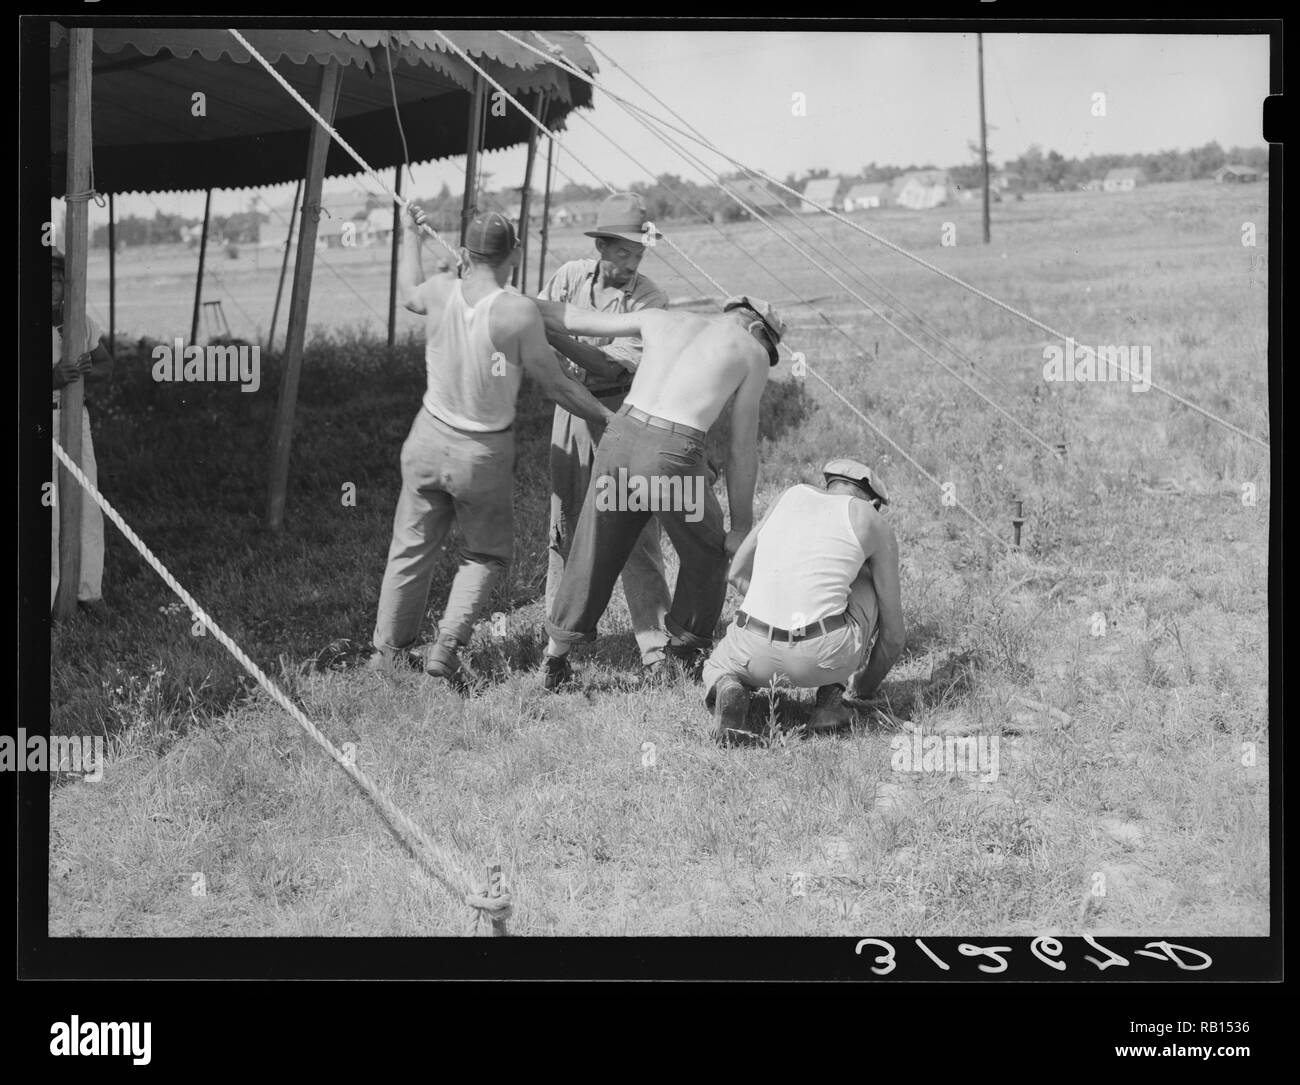 Pulling ropes for attachment to stakes, Lasses-White traveling show. Sikeston, Missouri ca 1938 by Lee, Russell, 1903-1986.jpg - RB1536 1RB1536 - Stock Image